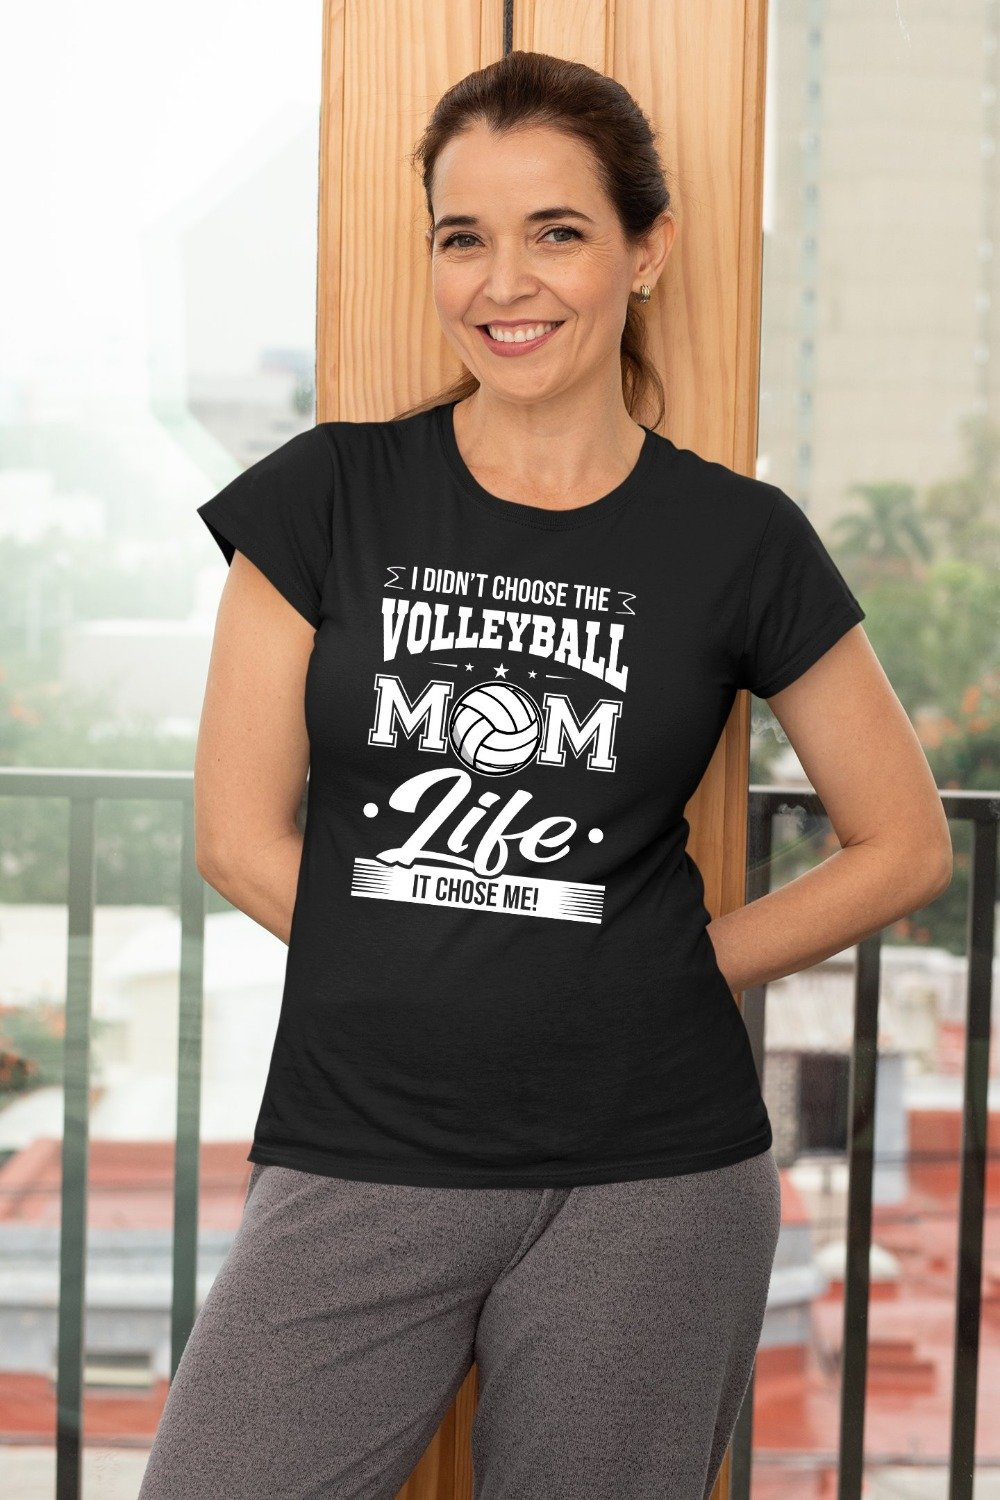 I Didn't Choose The Volleyball Mom Life It Chose Me T-Shirt